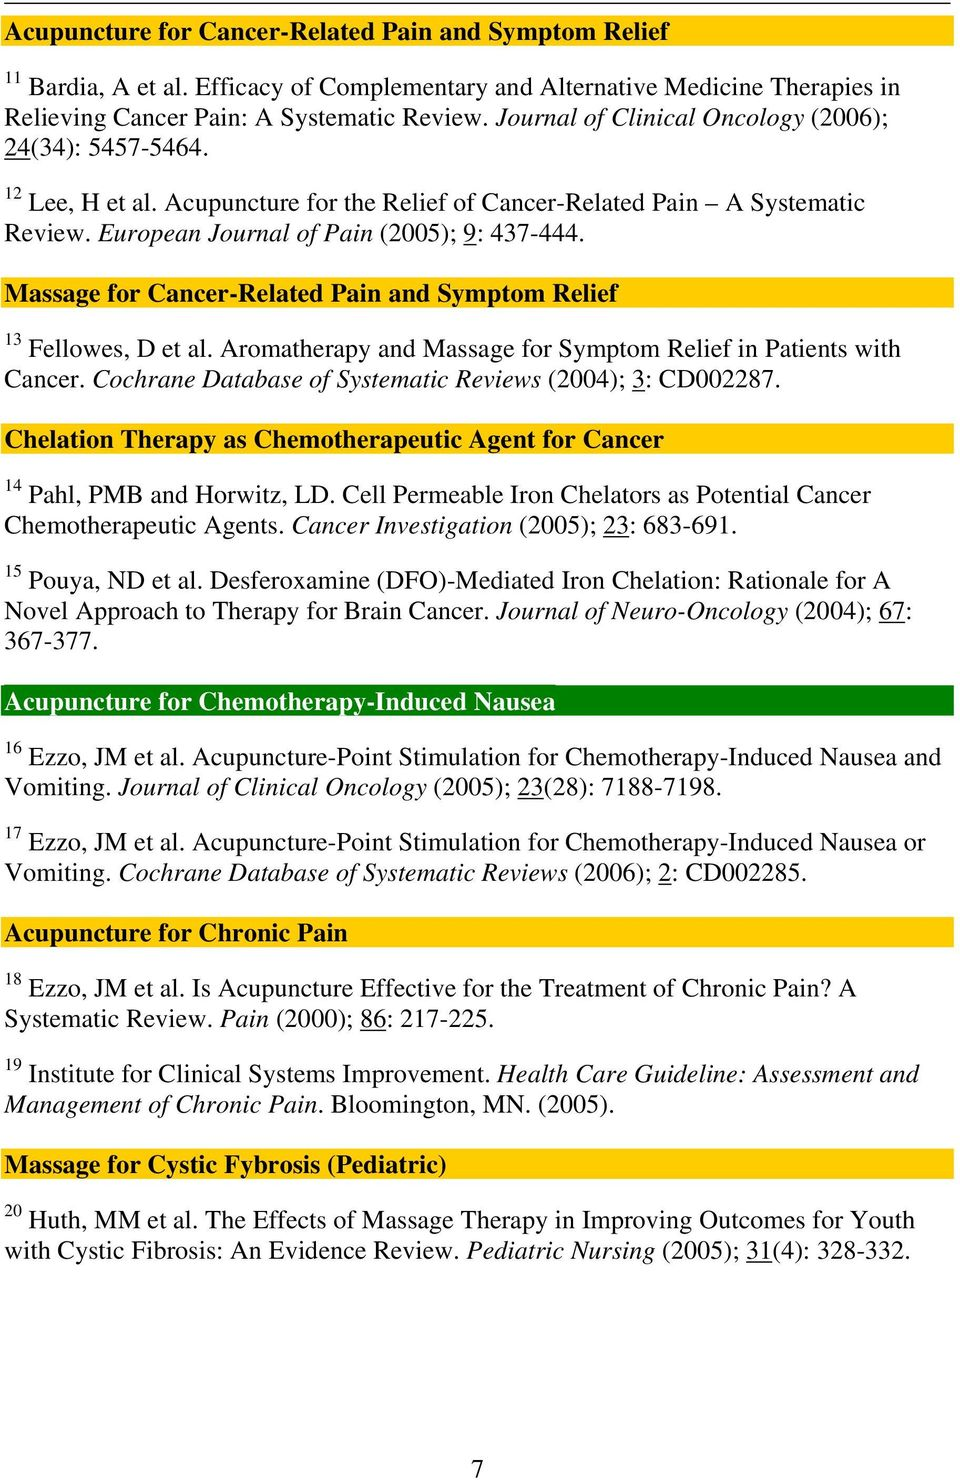 Massage for Cancer-Related Pain and Symptom Relief 13 Fellowes, D et al. Aromatherapy and Massage for Symptom Relief in Patients with Cancer.